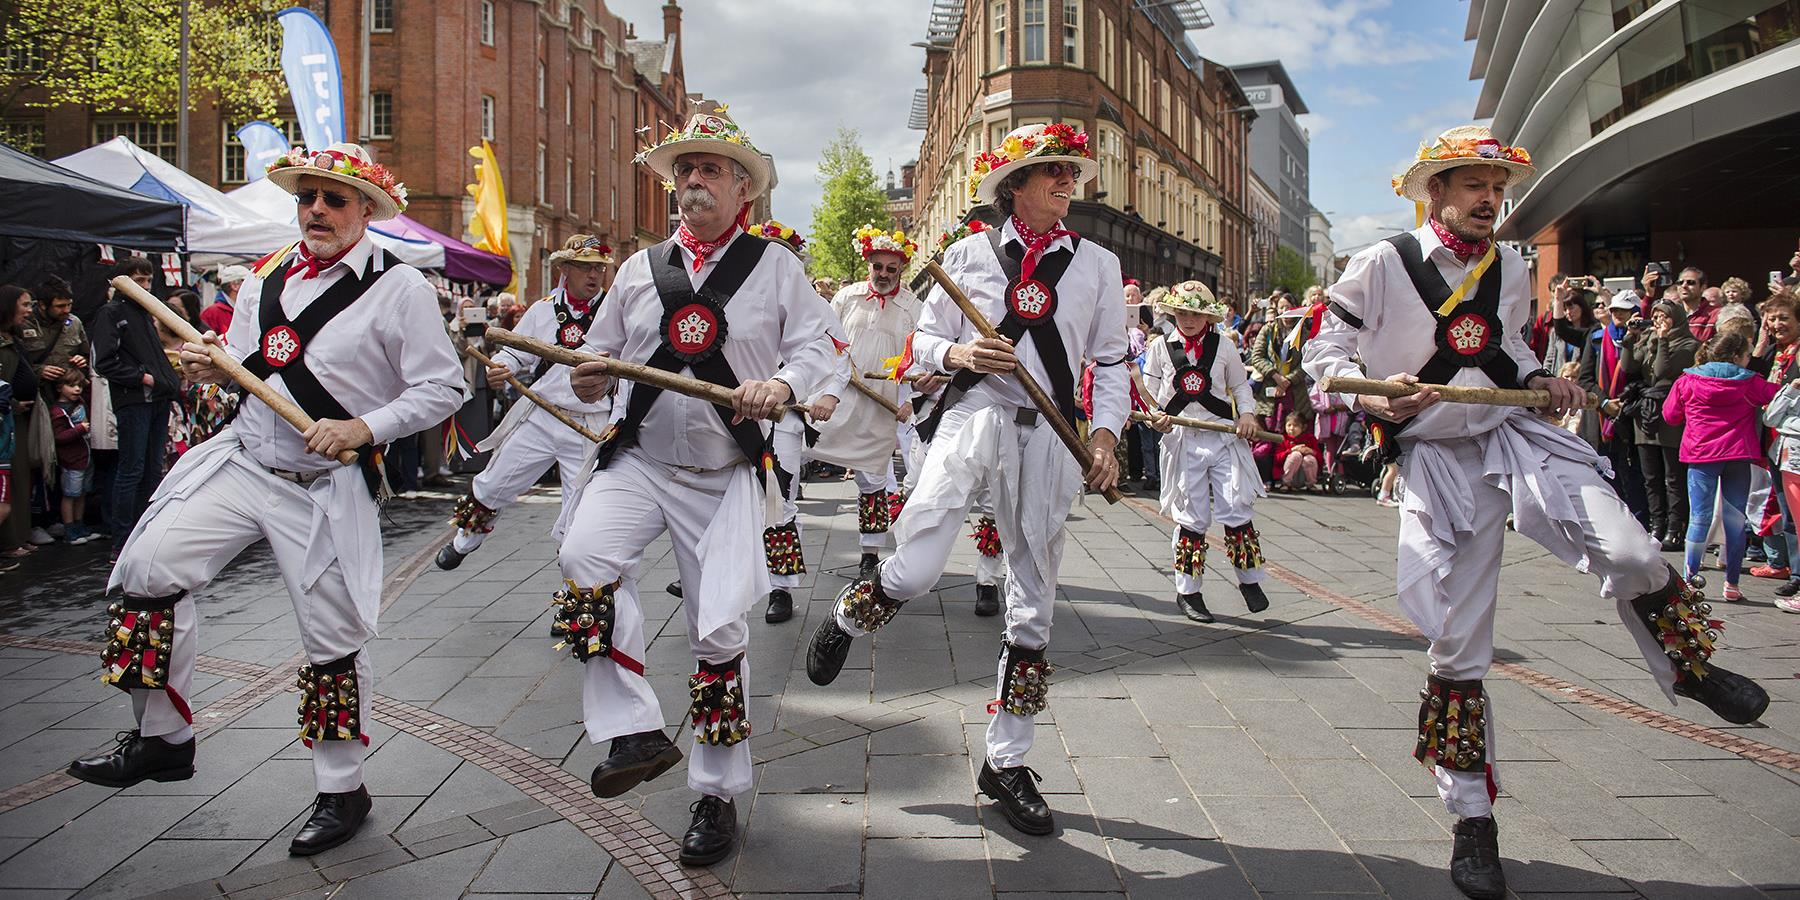 Traditionally English ways to celebrate St George's Day in Leicester